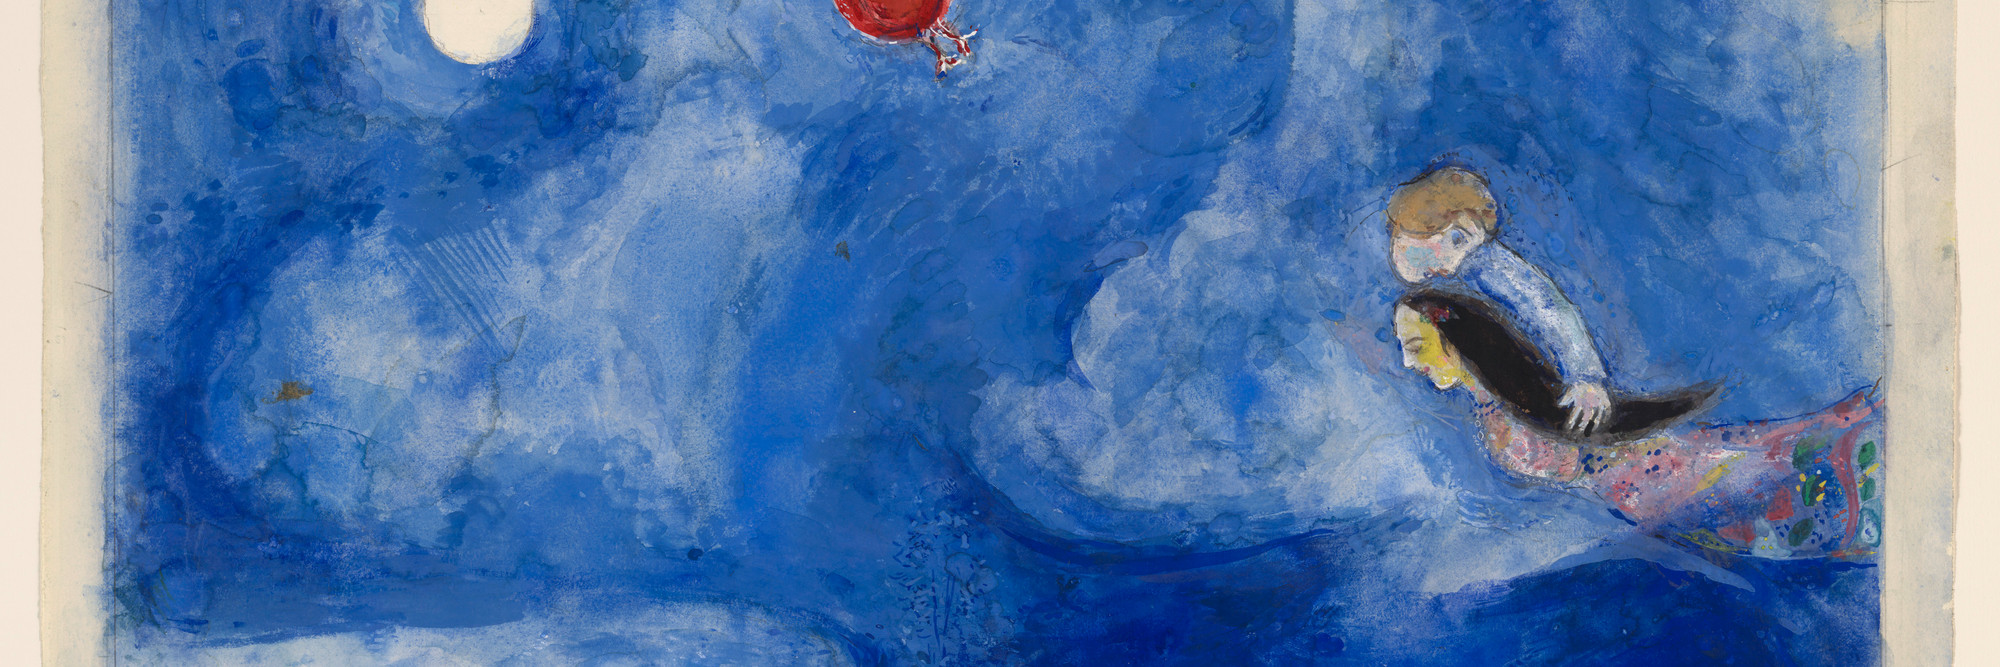 Marc Chagall. <em>Aleko and Zemphira by Moonlight.</em> Study for backdrop for Scene I of the ballet <em>Aleko.</em> 1942. Gouache and pencil on paper, 15 1/8 × 22 1/2″ (38.4 × 57.2 cm). The Museum of Modern Art. Acquired through the Lillie P. Bliss Bequest. © 2009 Artists Rights Society (ARS), New York/ADAGP, Paris.